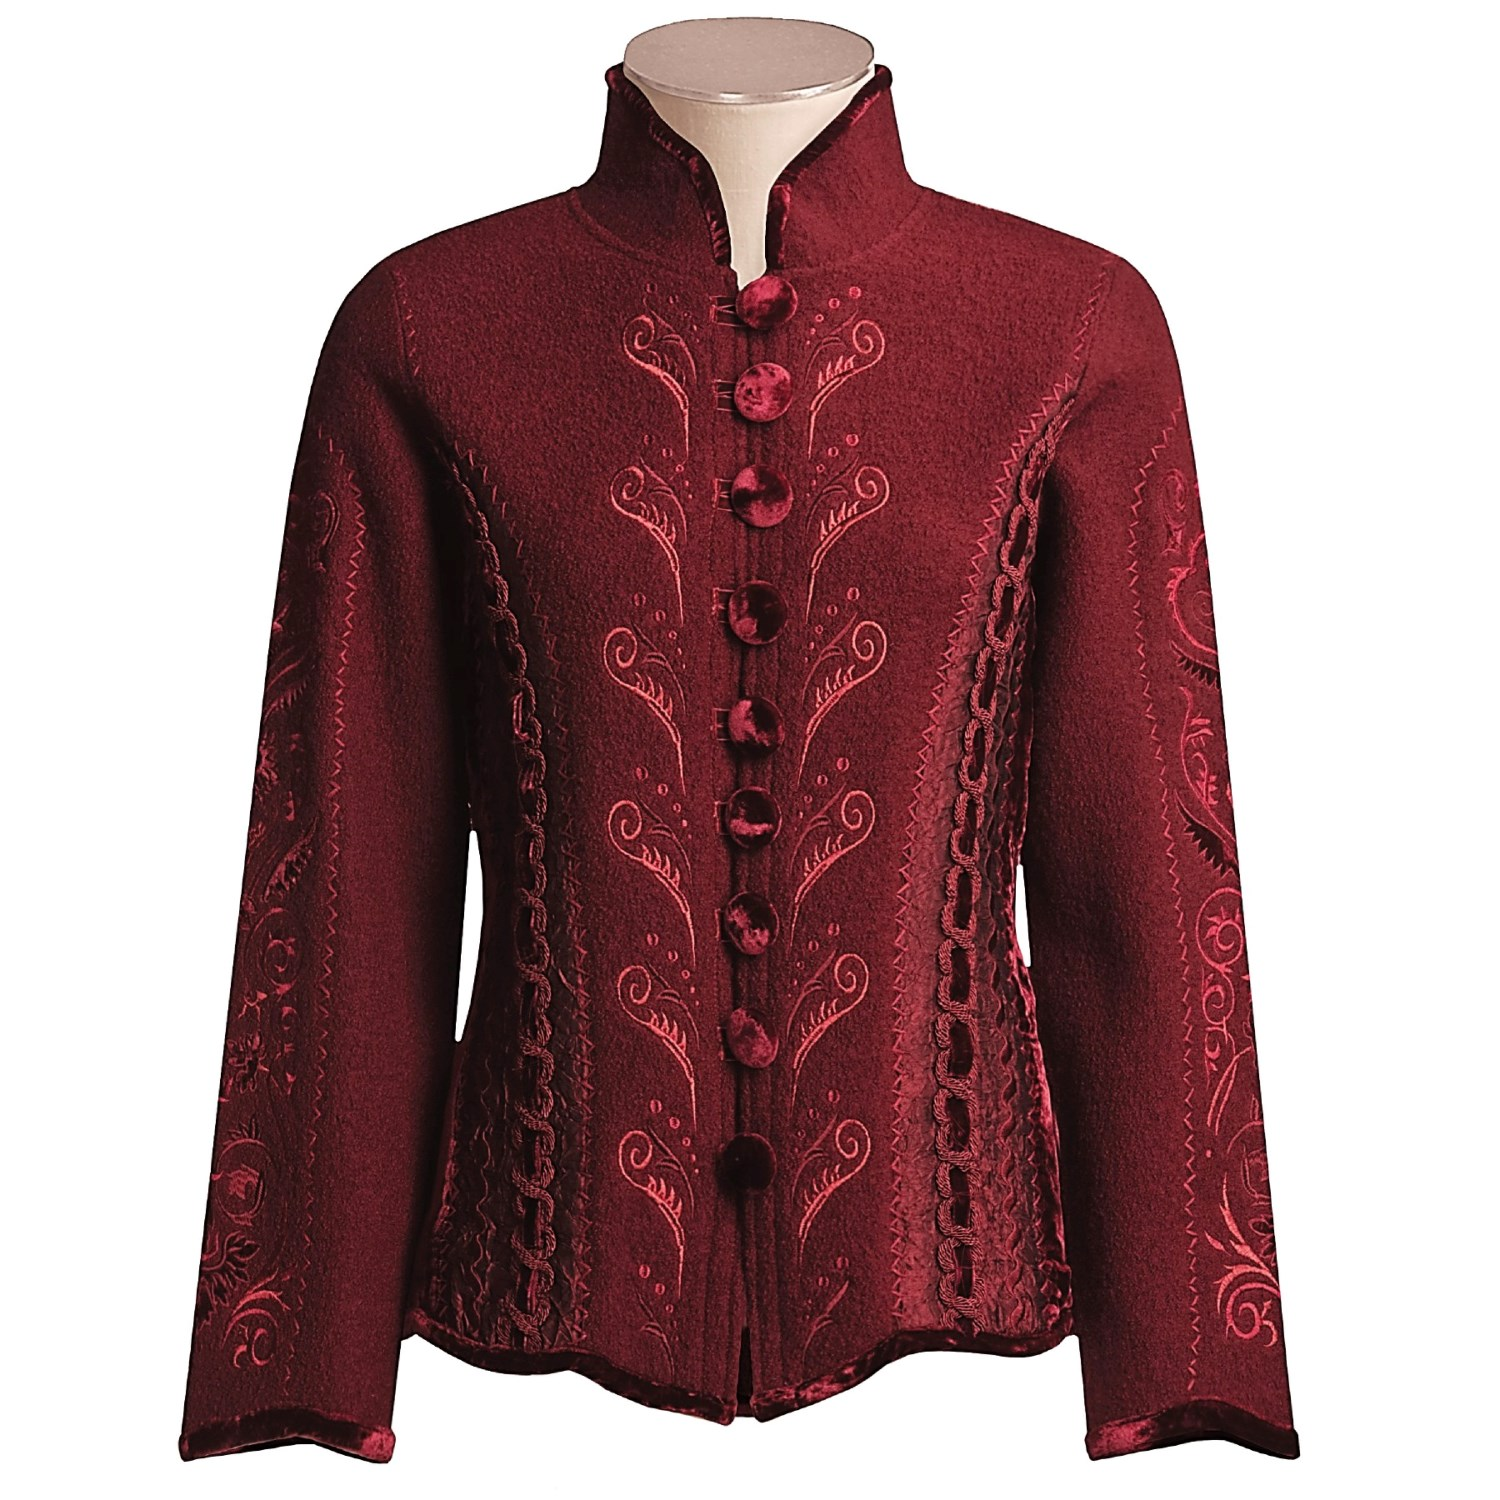 Covelo embroidered jacket for women w save